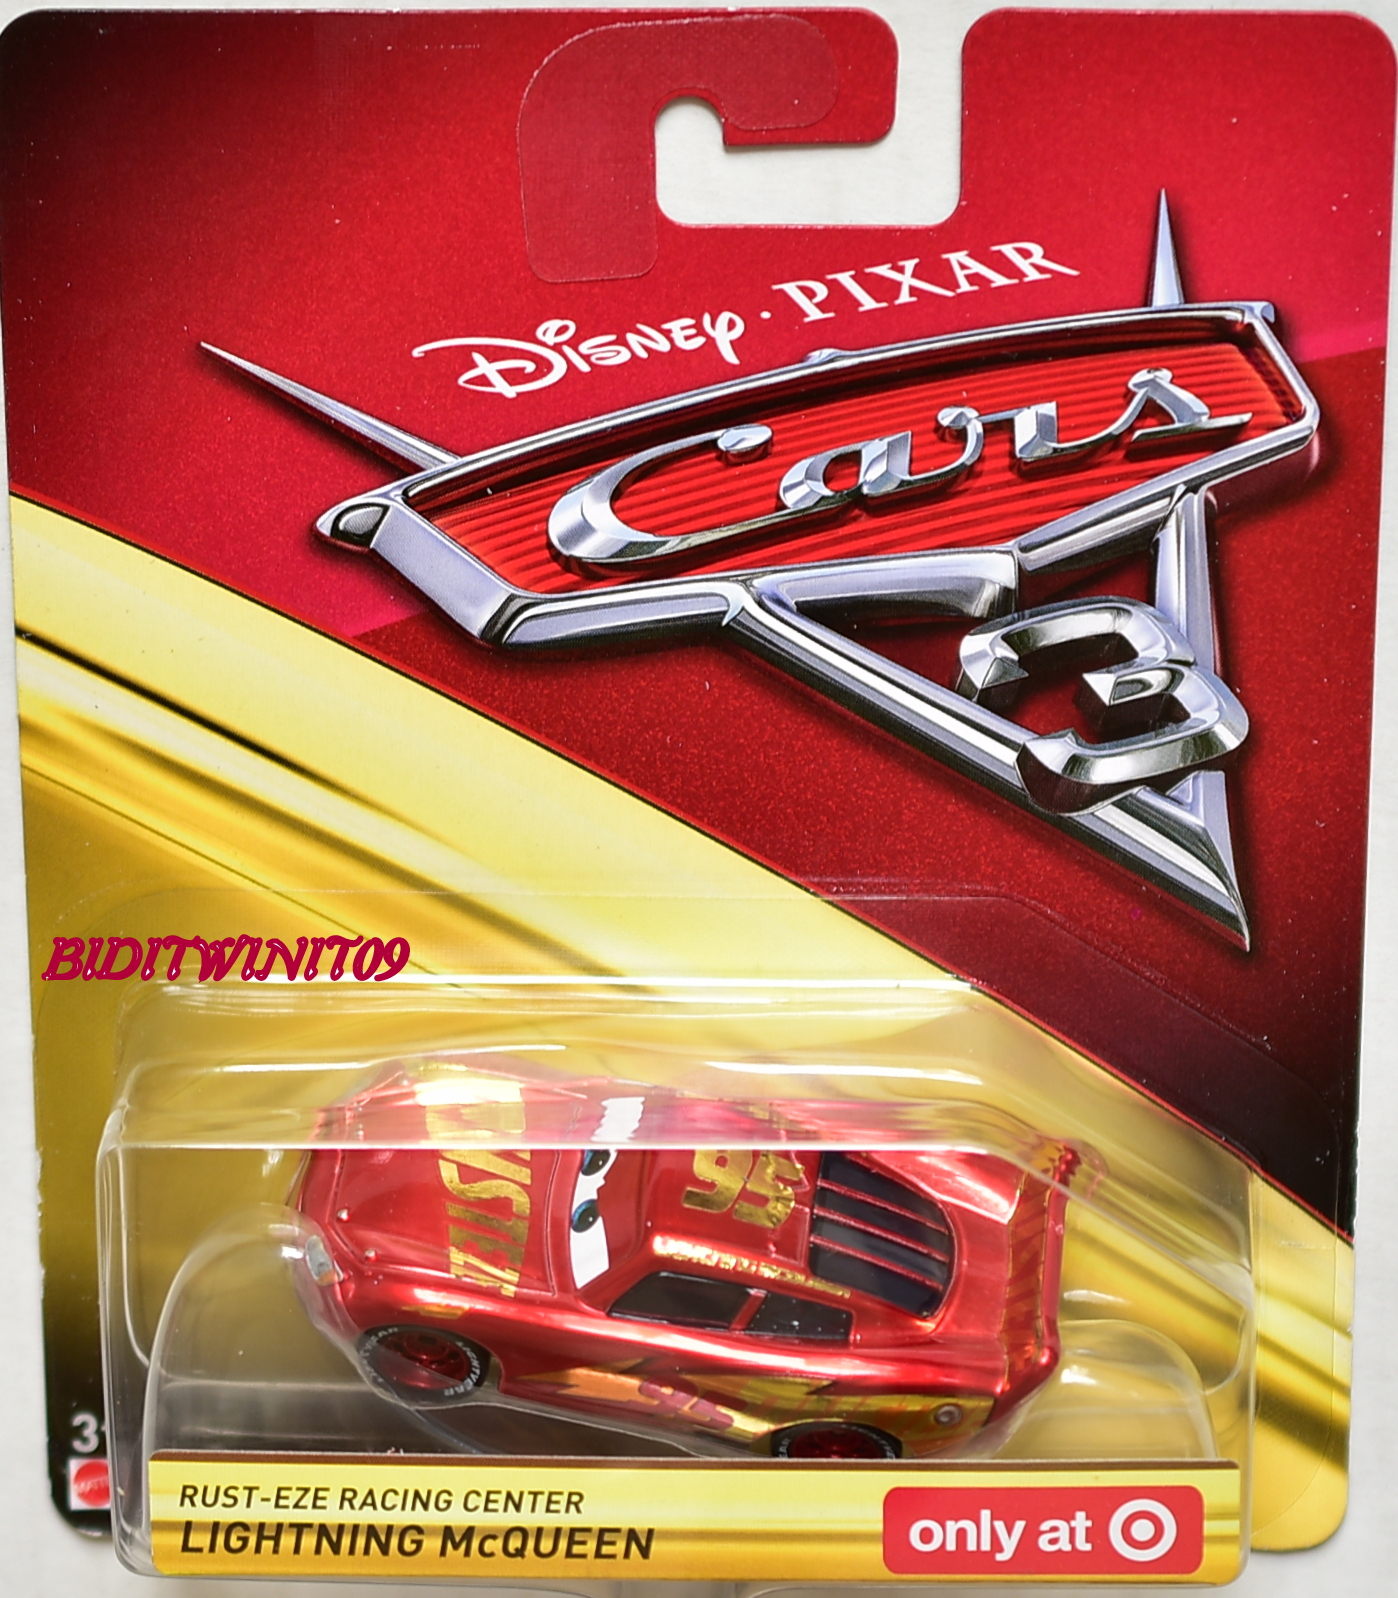 Disney Pixar Cars 3 Rust Eze Racing Center Lightning Mcqueen Only